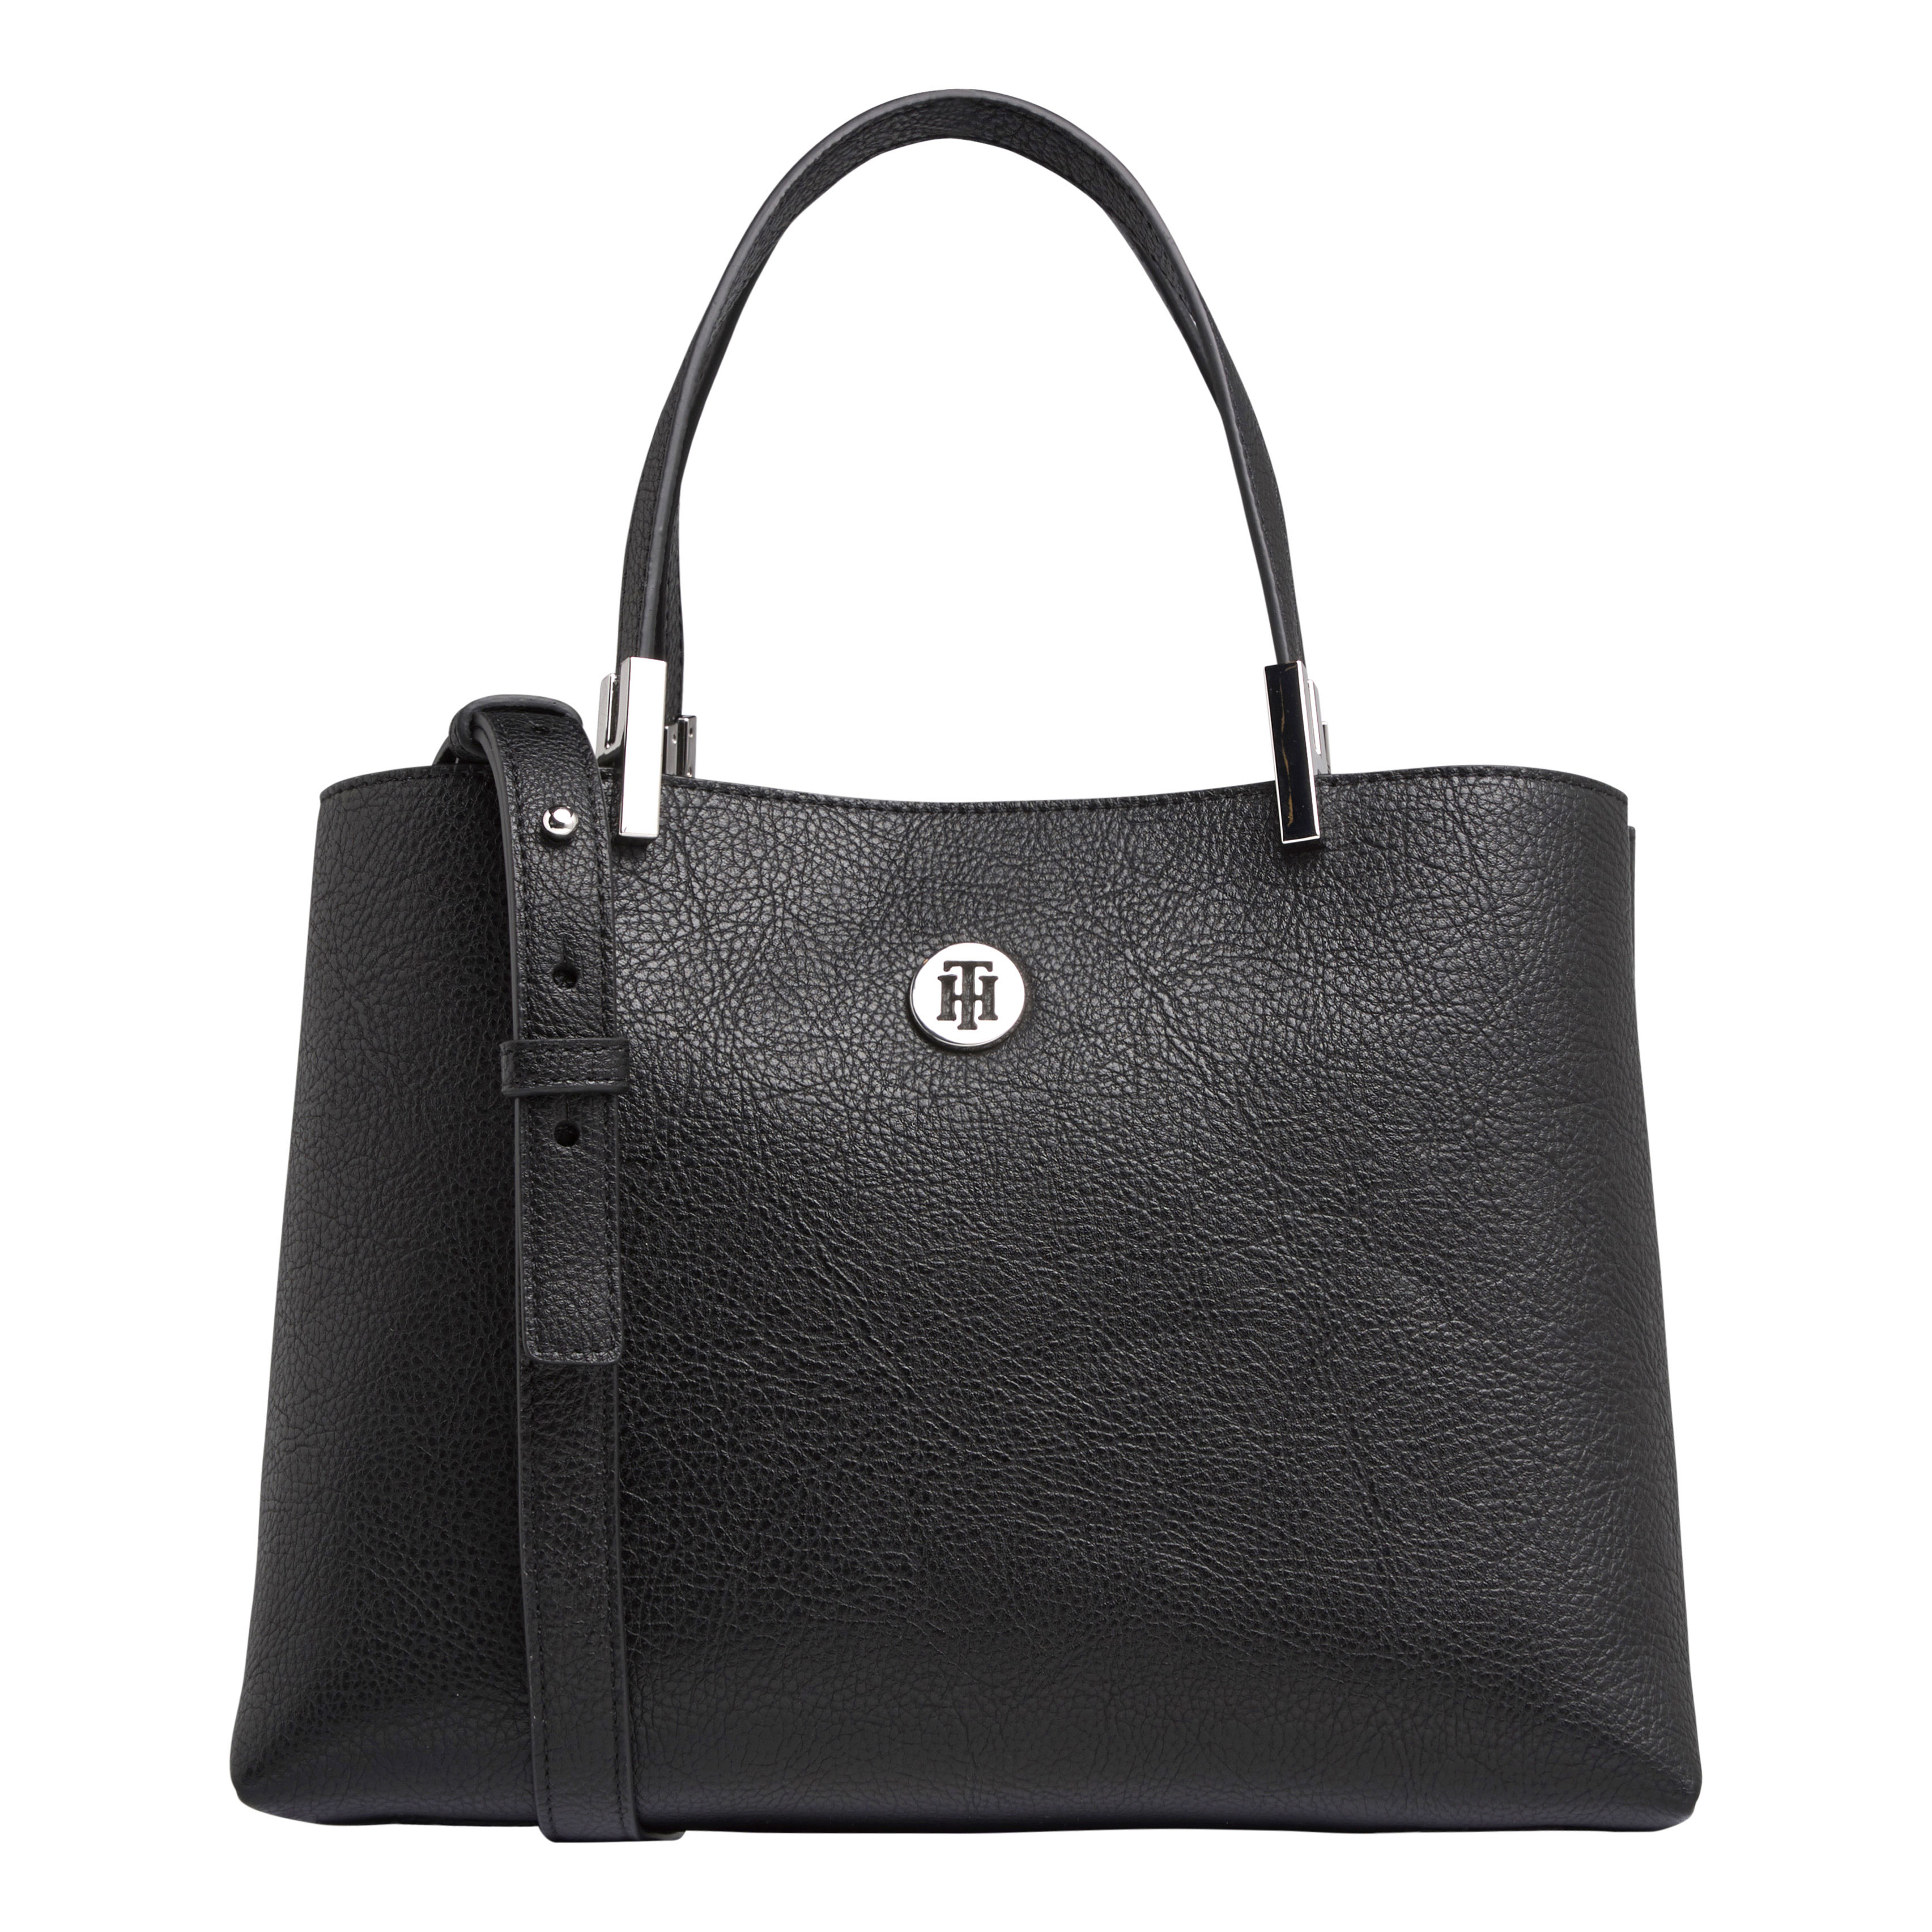 TOMMY HILFIGER Marroquinería Satchel Black AW0AW07685-BDS